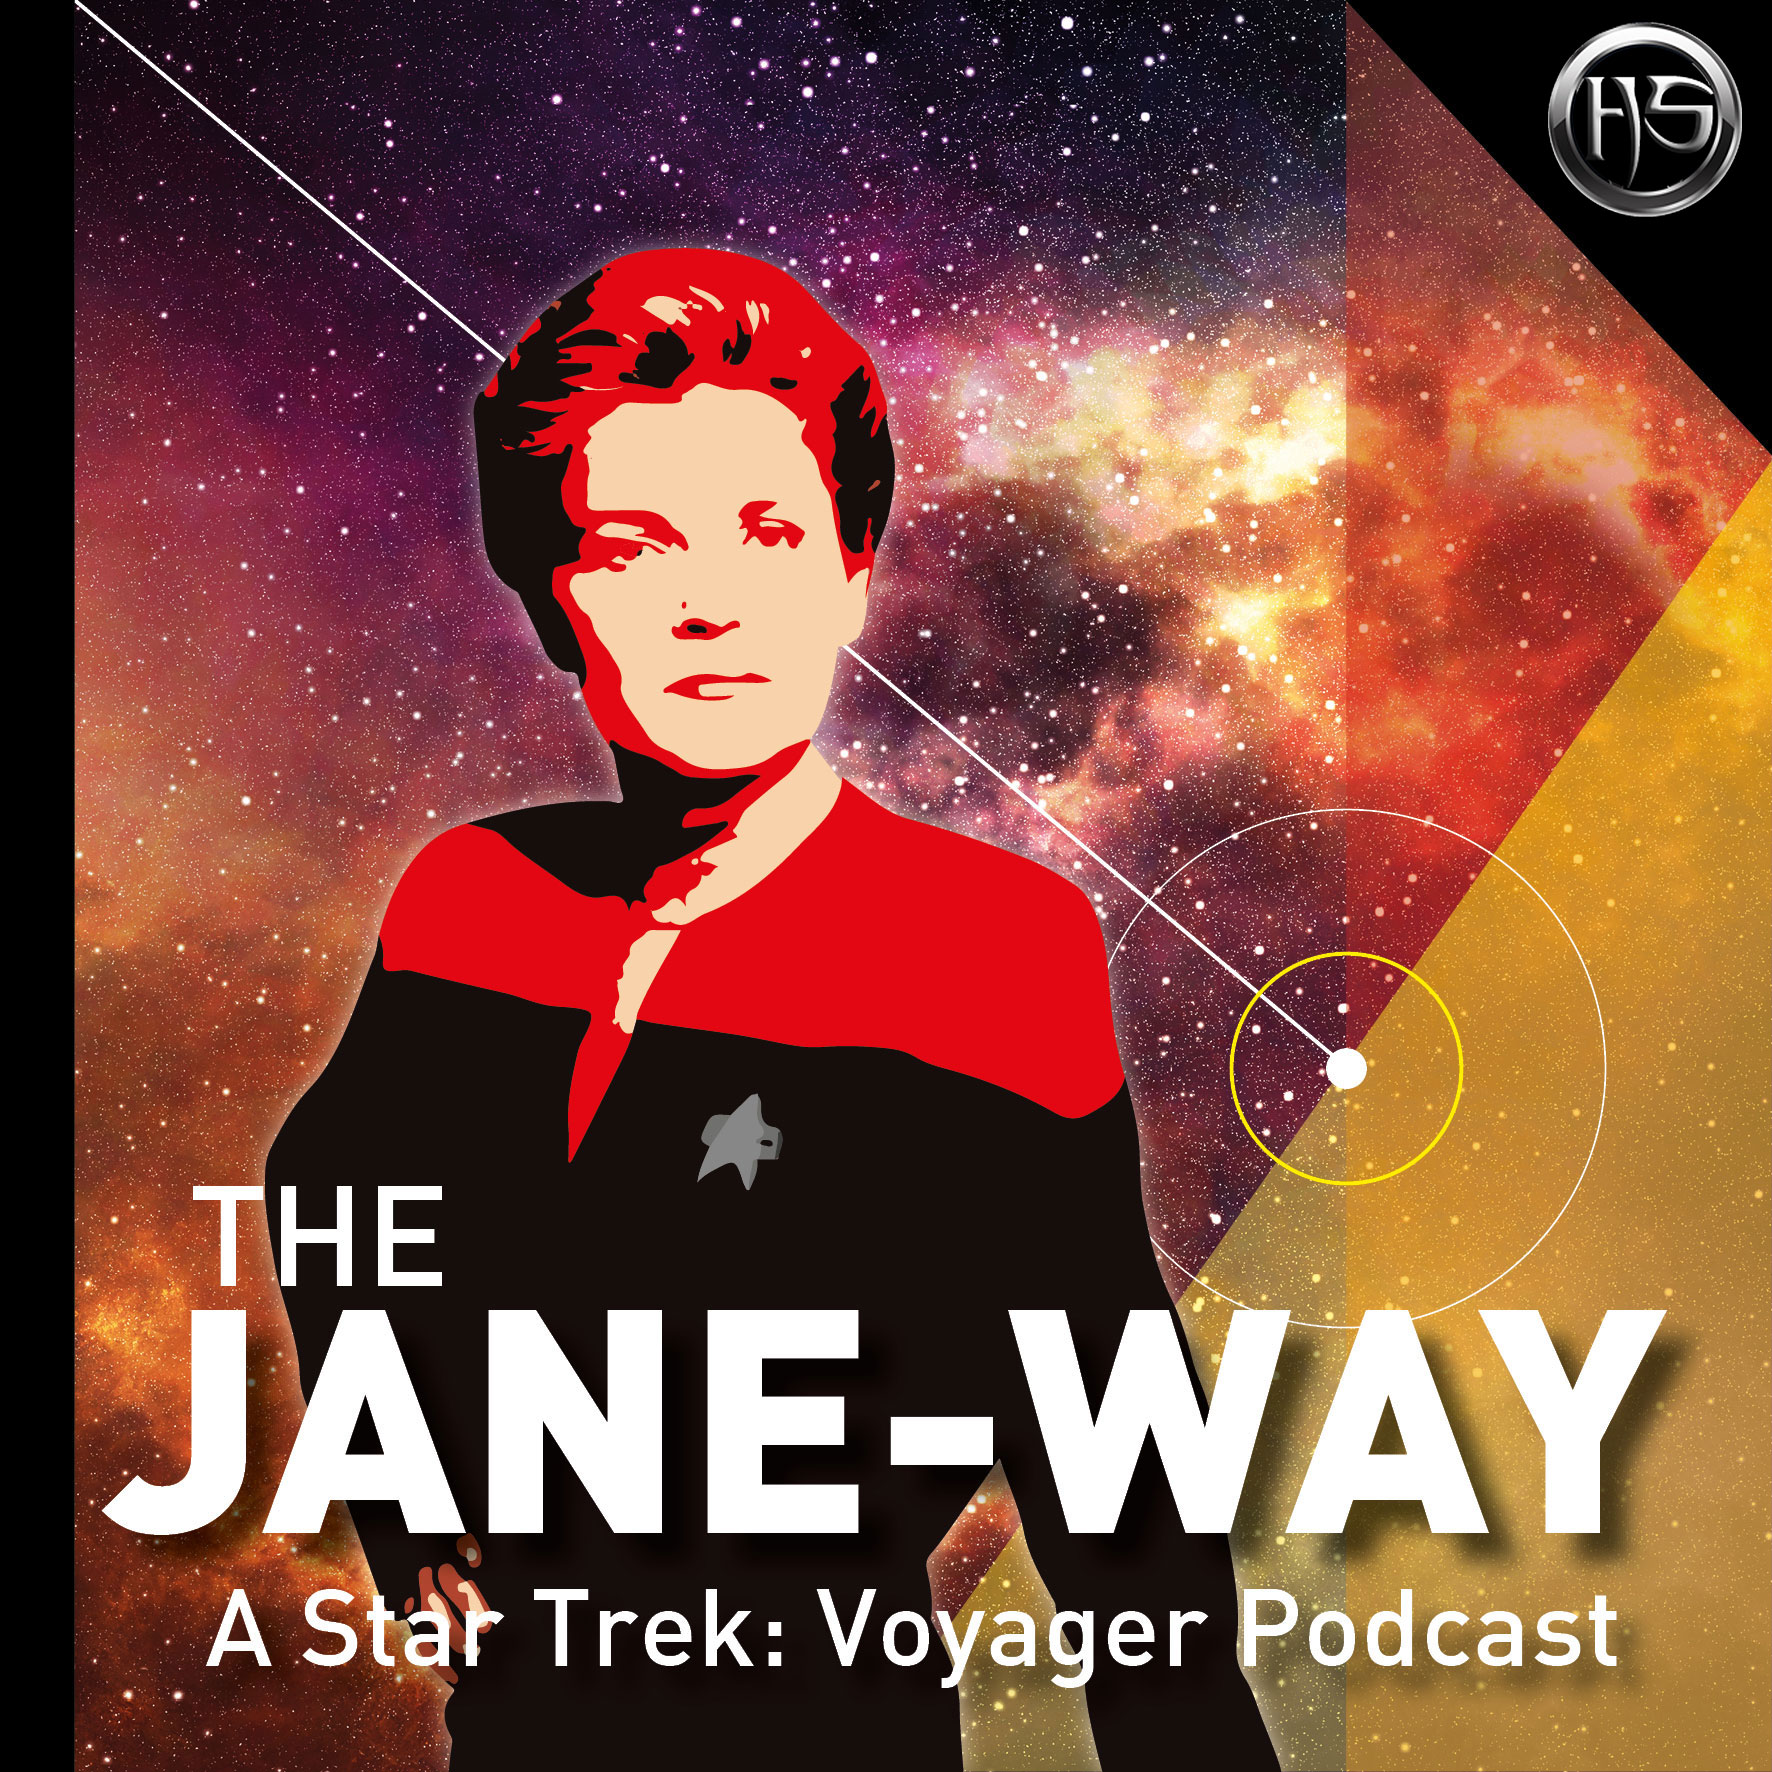 The Jane-Way - A Star Trek Voyager podcast